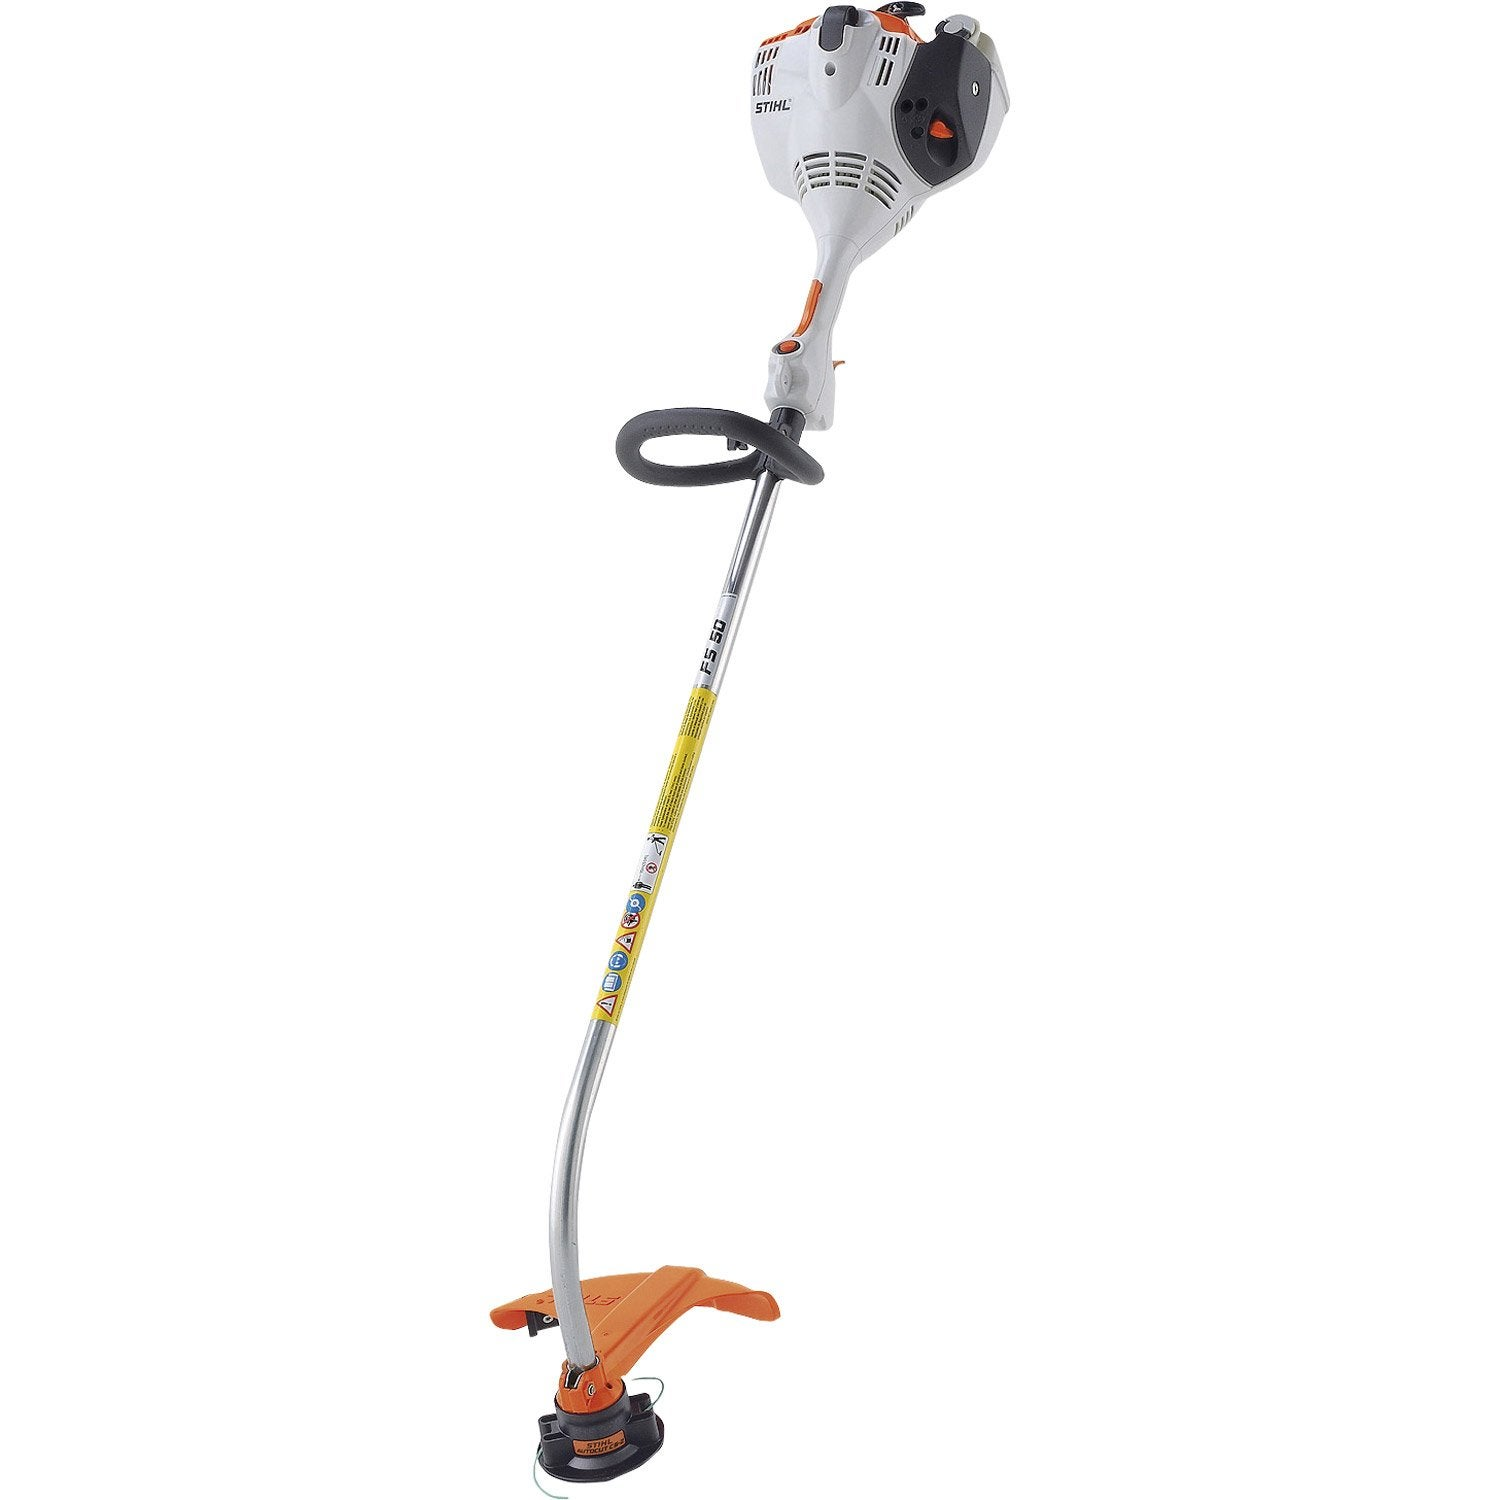 coupe bordures essence stihl fs 50 27 2 cm leroy merlin. Black Bedroom Furniture Sets. Home Design Ideas